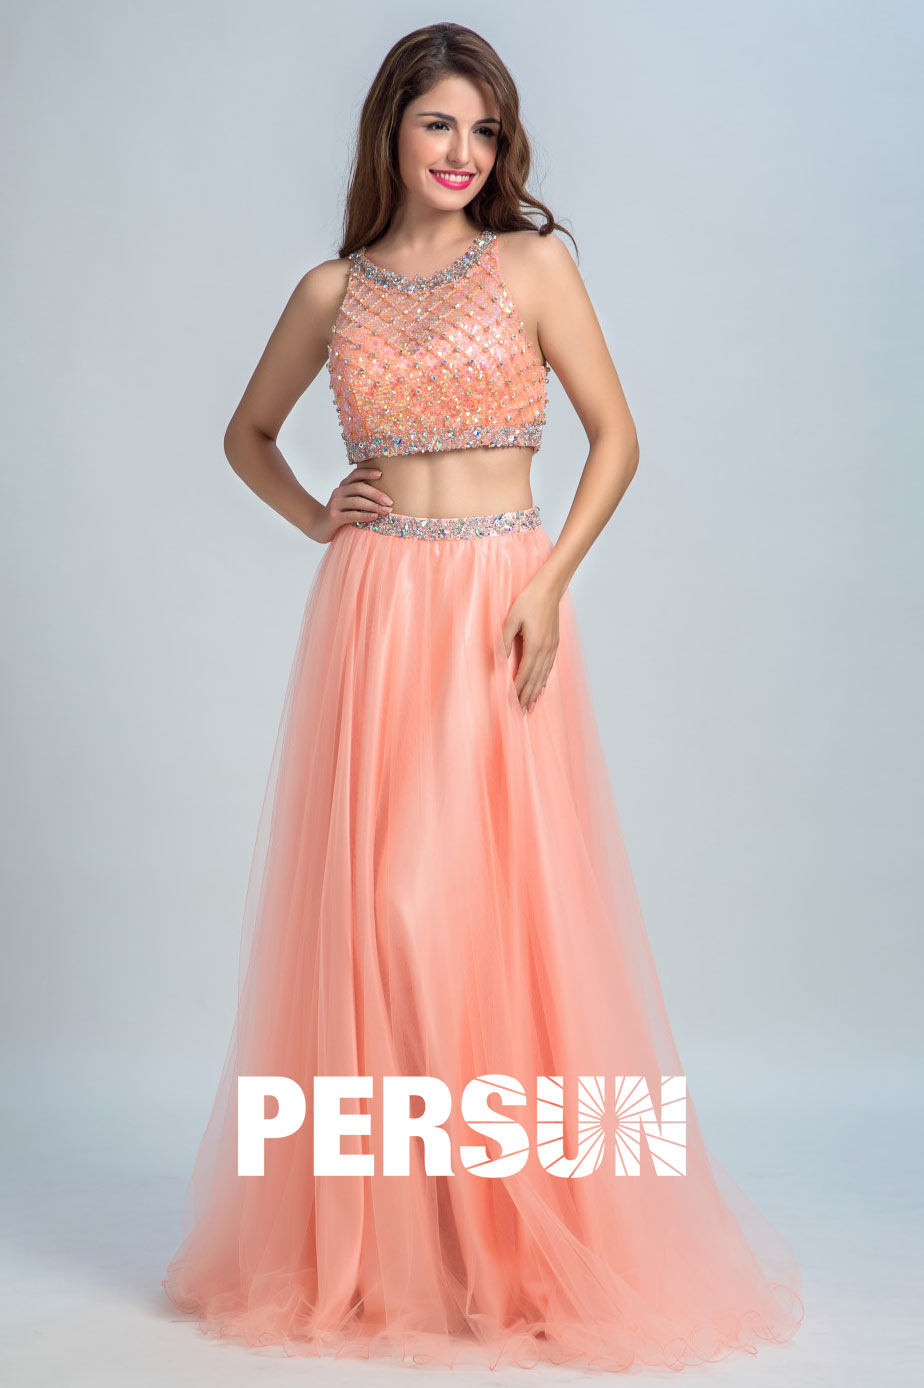 Robe soirée longue crop top orange scintillante - Persun.fr 80b1f4421724